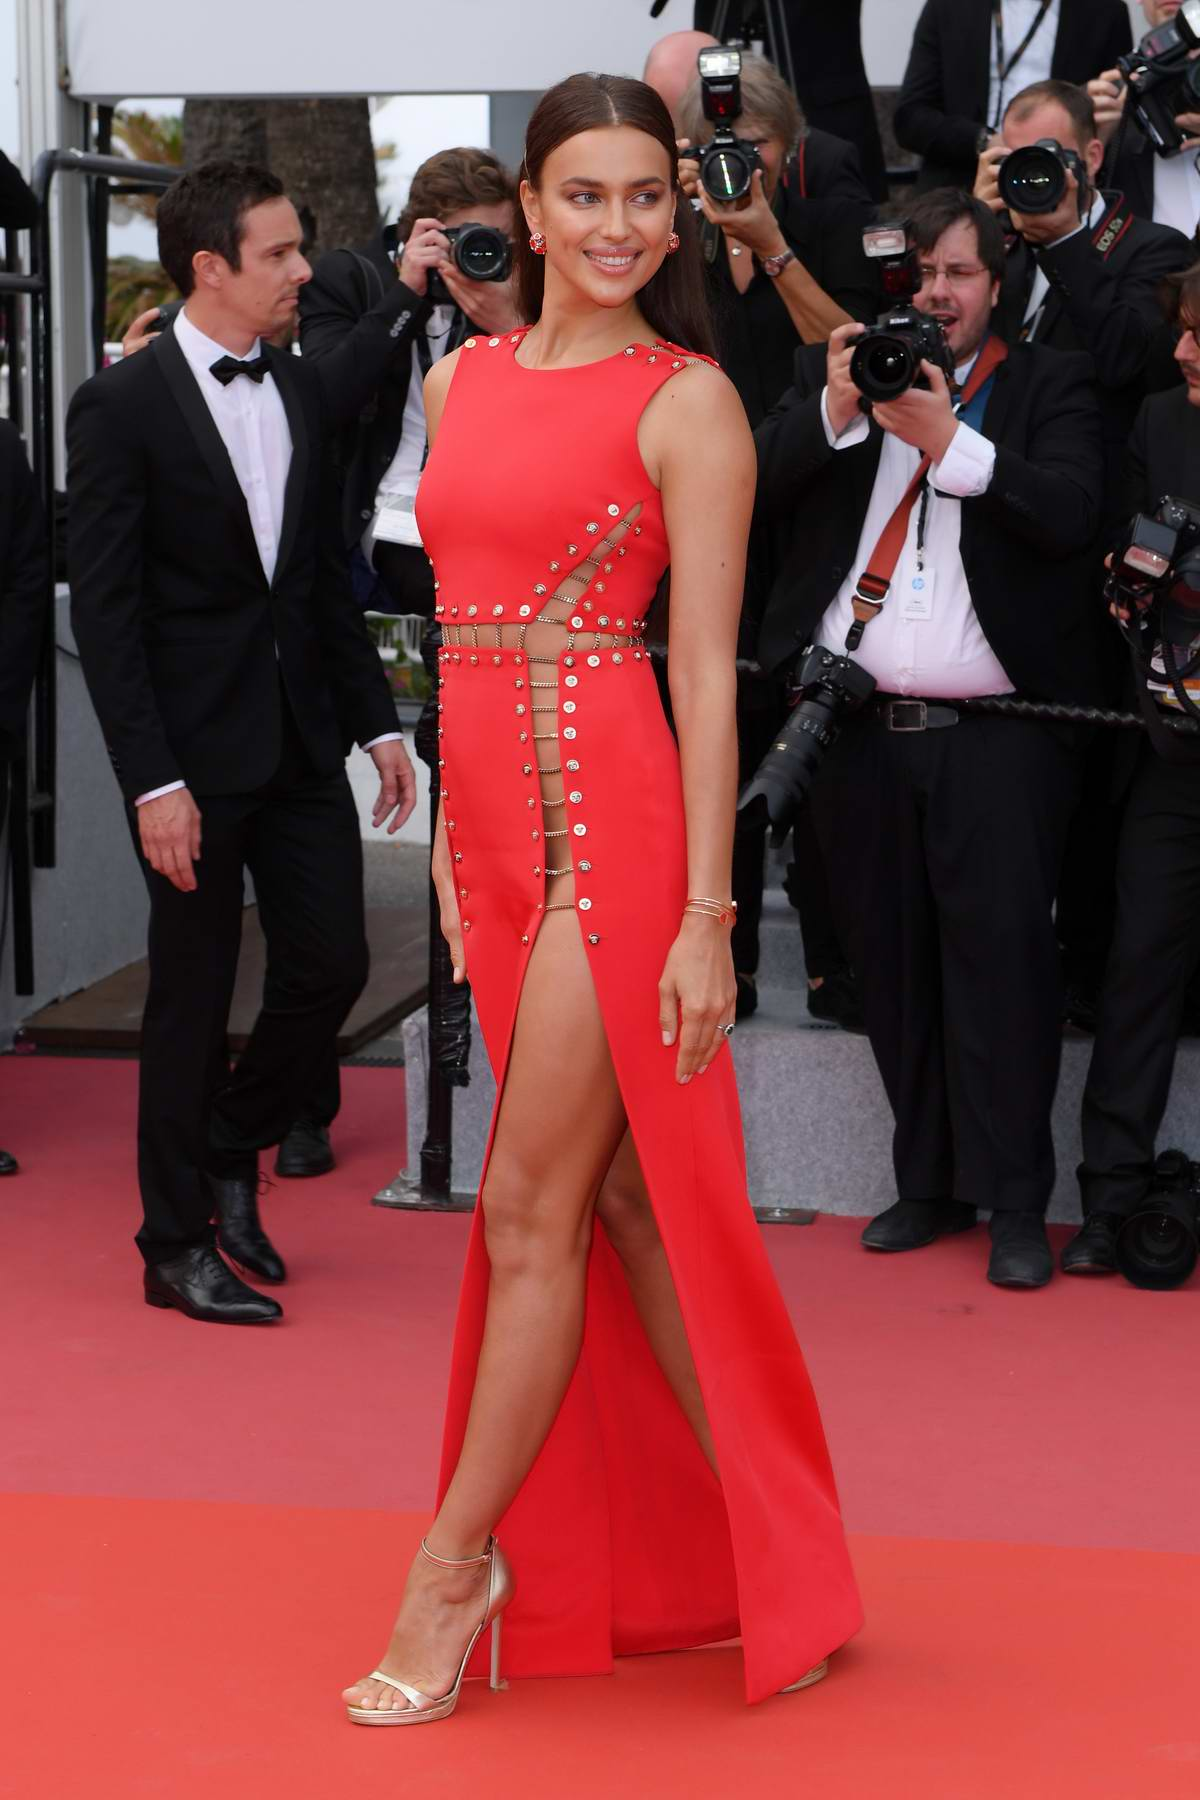 Irina Shayk at the premiere of 'Sorry Angel' during 71st Cannes Film Festival in Cannes, France